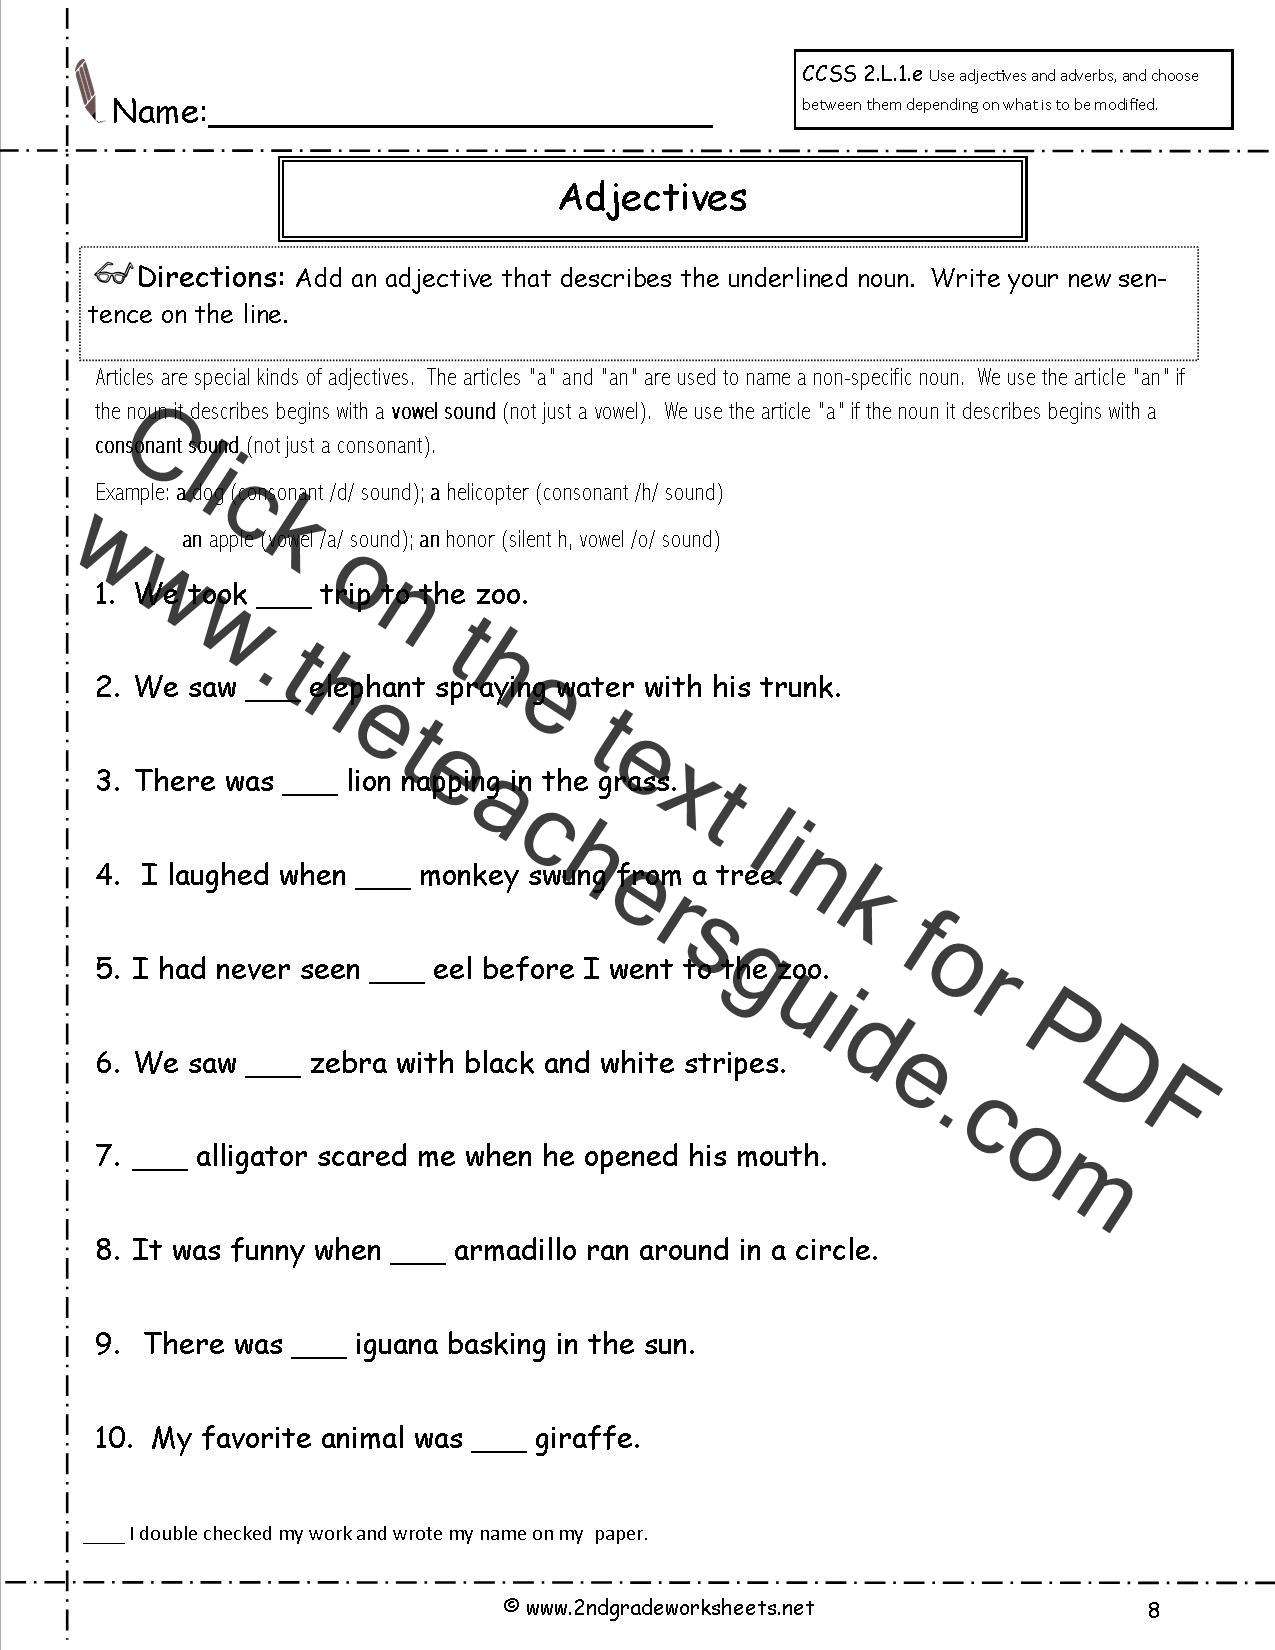 Printables Second Grade Grammar Worksheets free languagegrammar worksheets and printouts adjectives worksheets